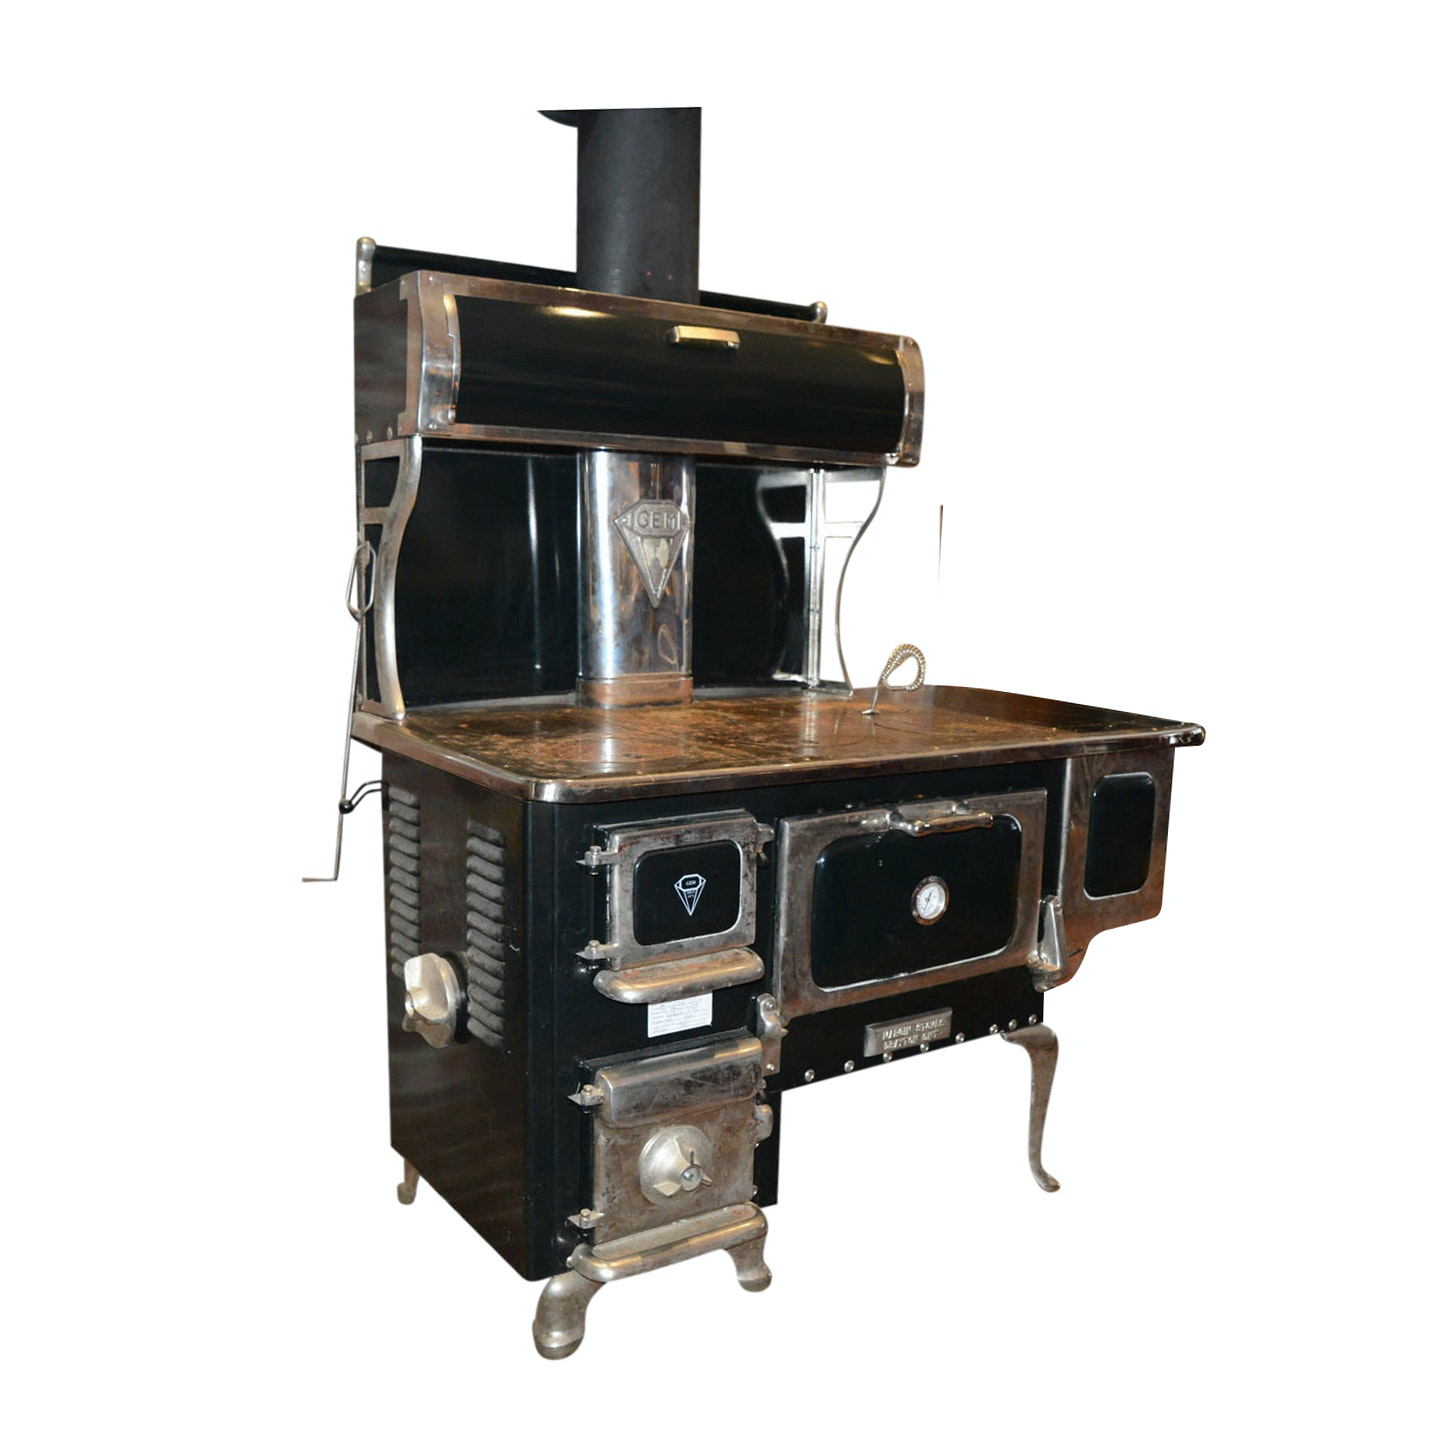 """Margin Stoves """"Gem"""" Cooking Range and Space Heater"""